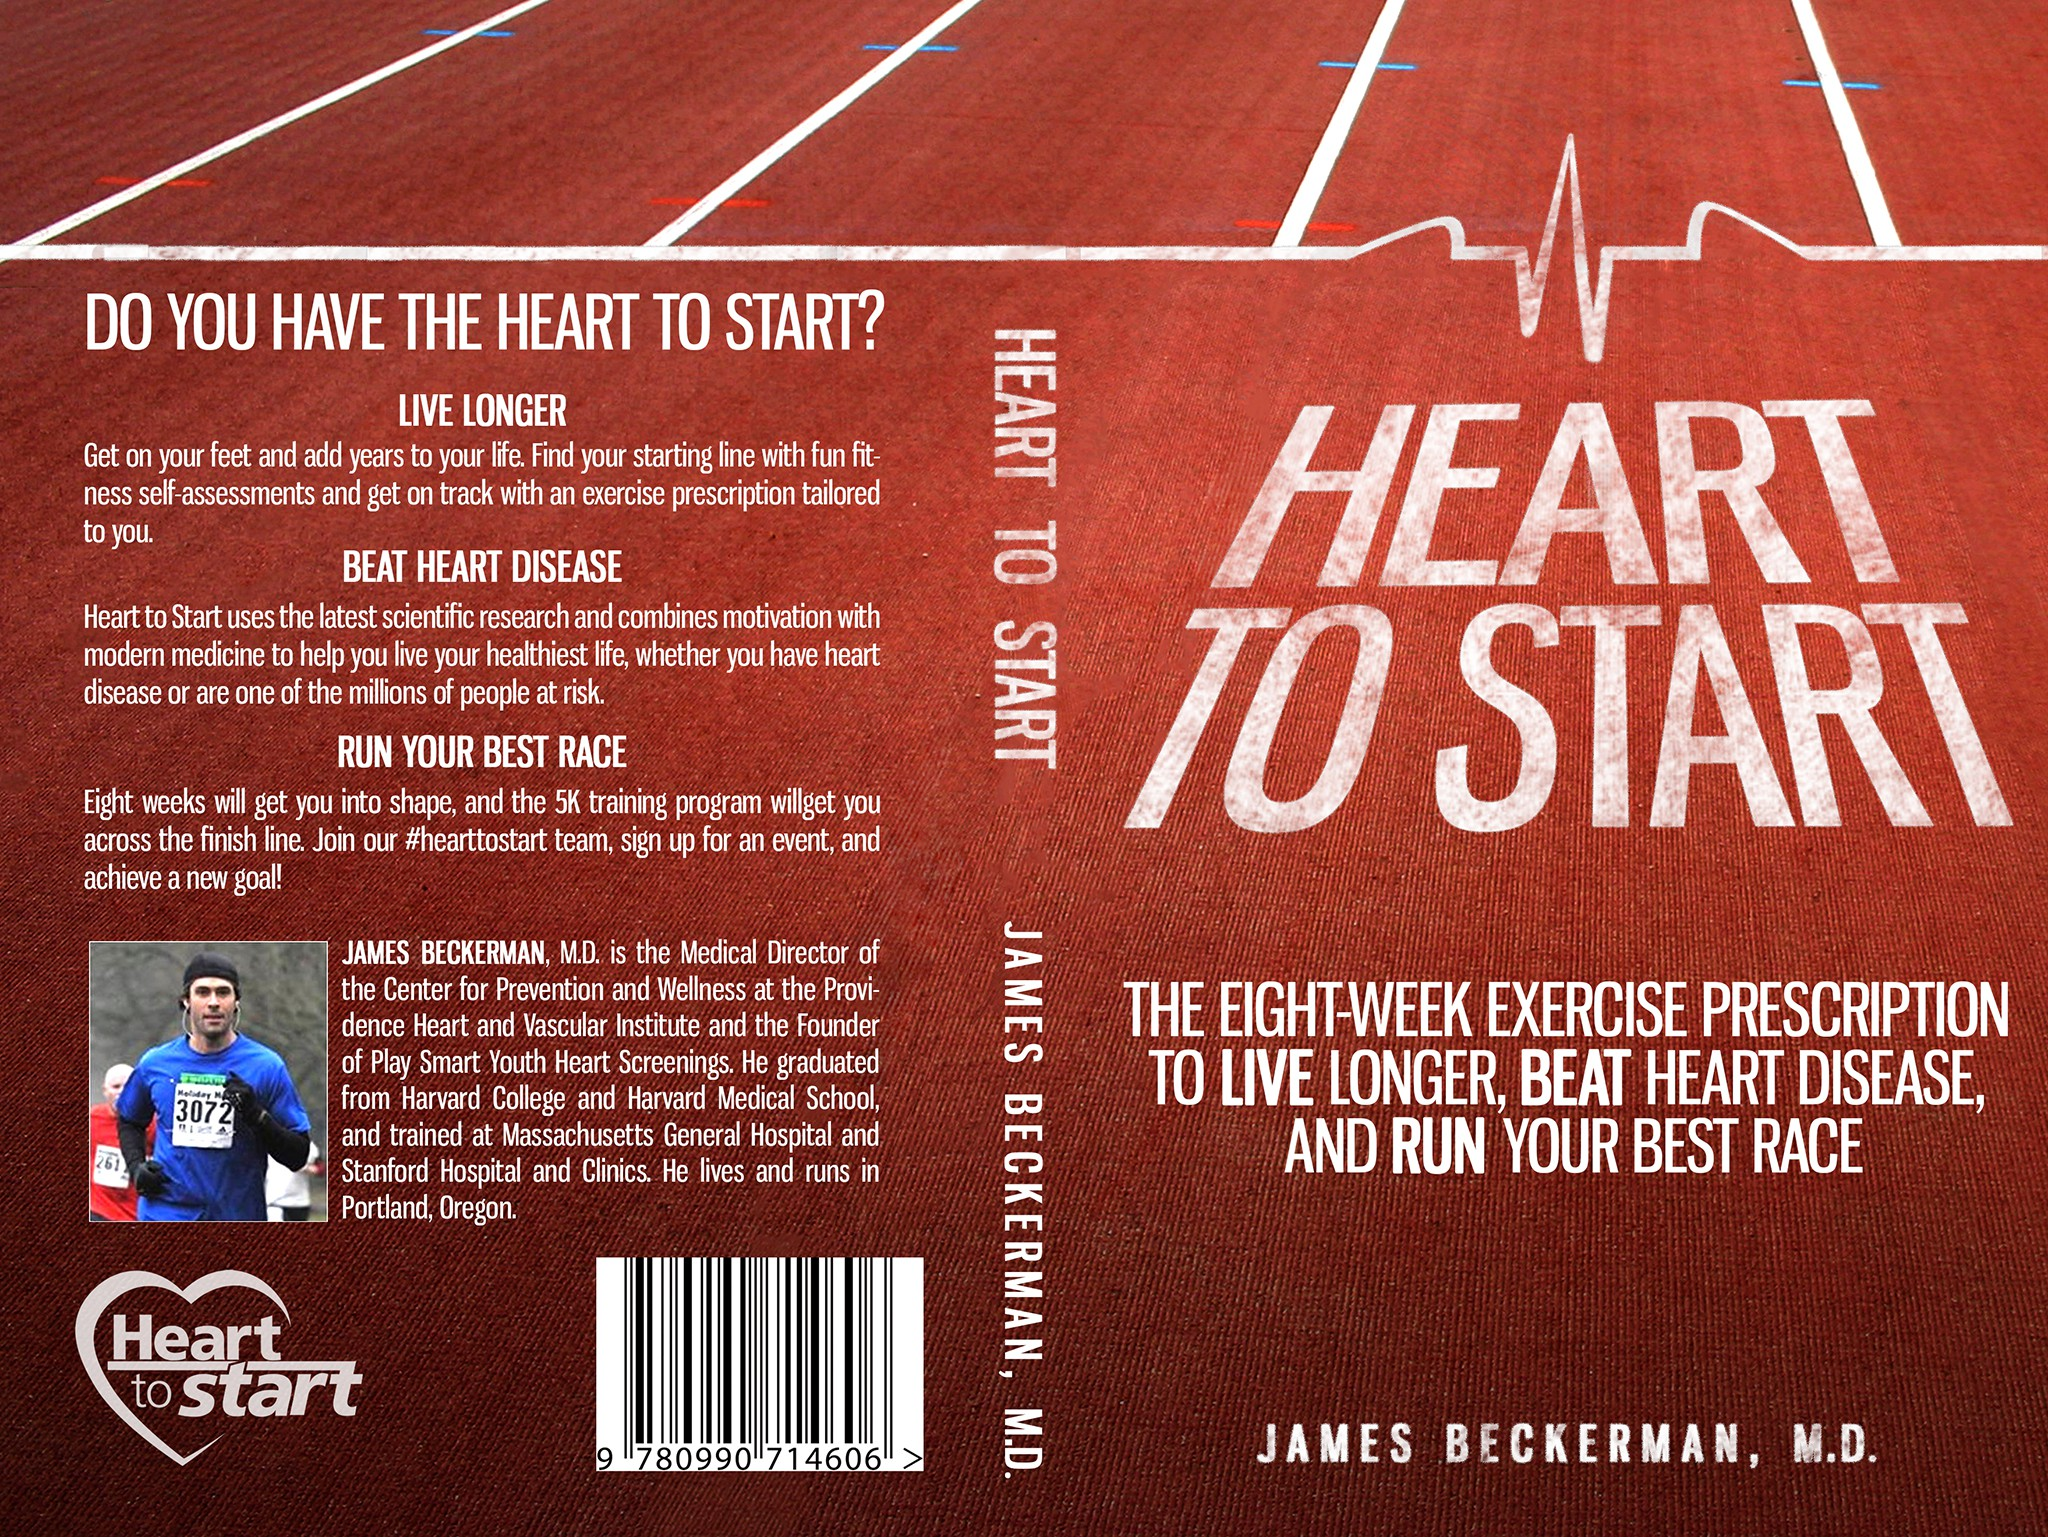 Create an inspiring cover for an exercise book for people with heart disease